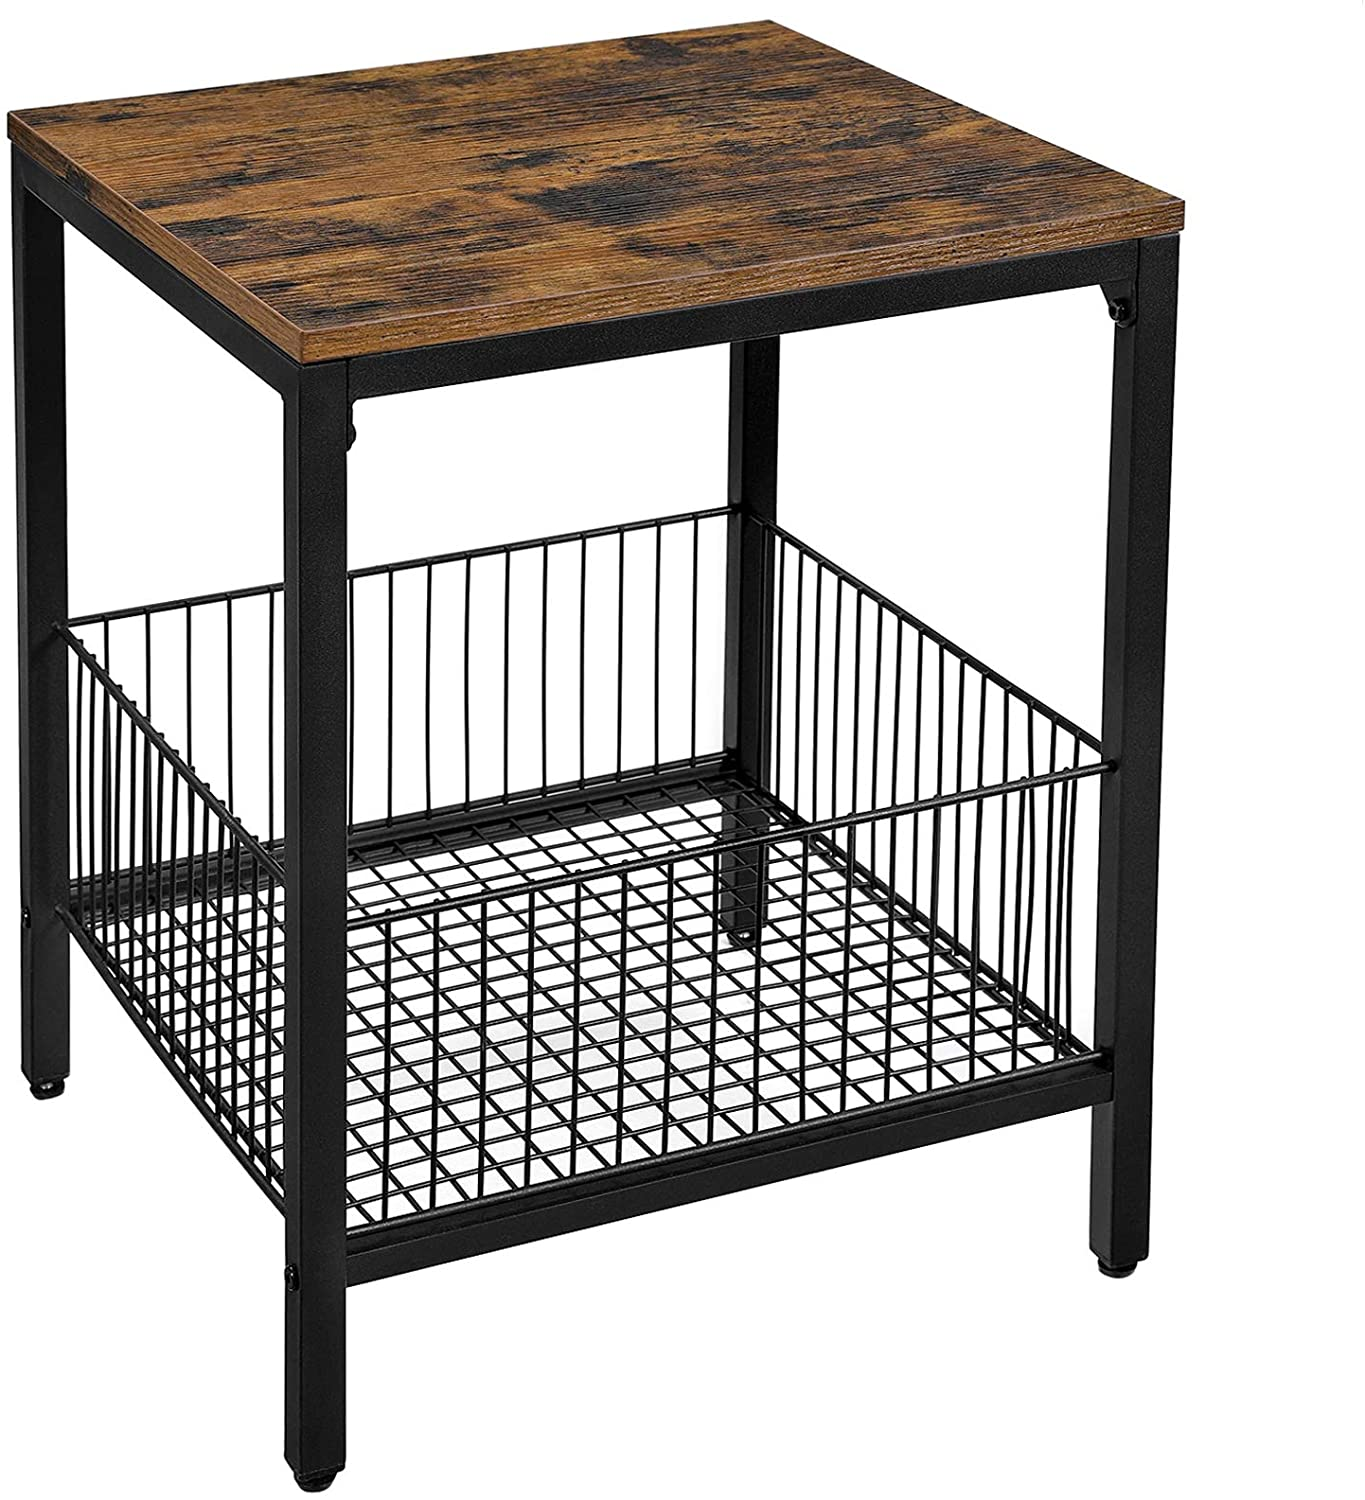 Shop hawkinswoodshop.com for solid wood & metal modern, traditional, contemporary, industrial, custom, rustic, and farmhouse furniture including our Ryan Wire Basket Industrial Farmhouse Side Table.  Enjoy free nationwide shipping, help with the fight against hunger in the US, and support a family owned and operated business that helps puts food on the table for folks in rural Northern California.